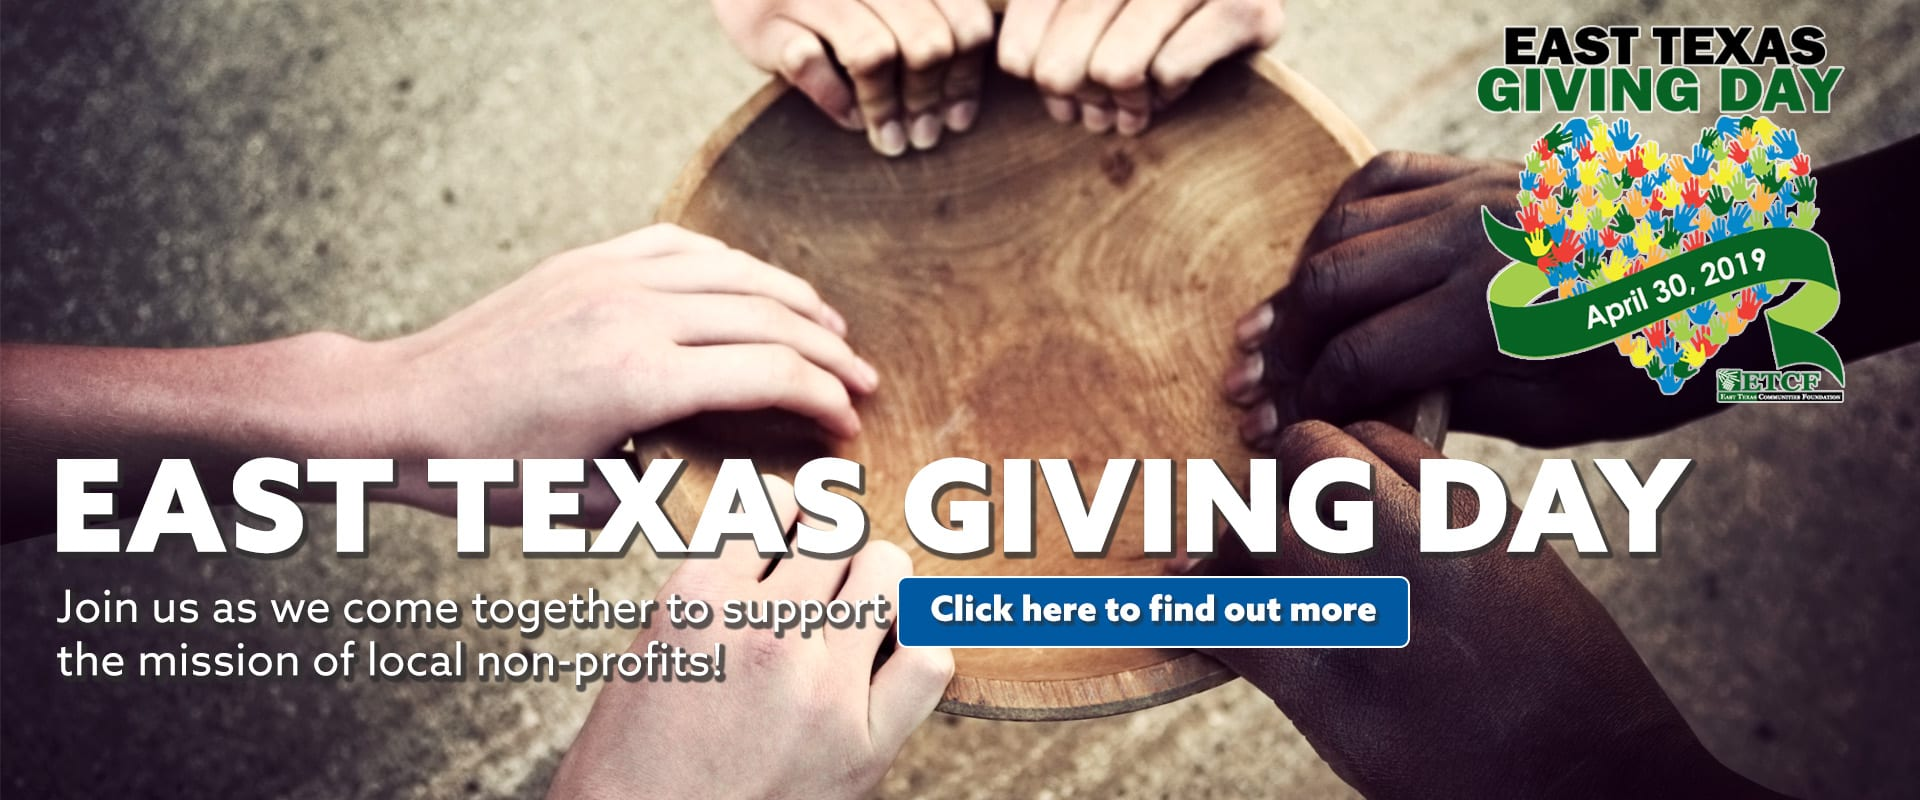 2019 East Texas Giving Day KGLY